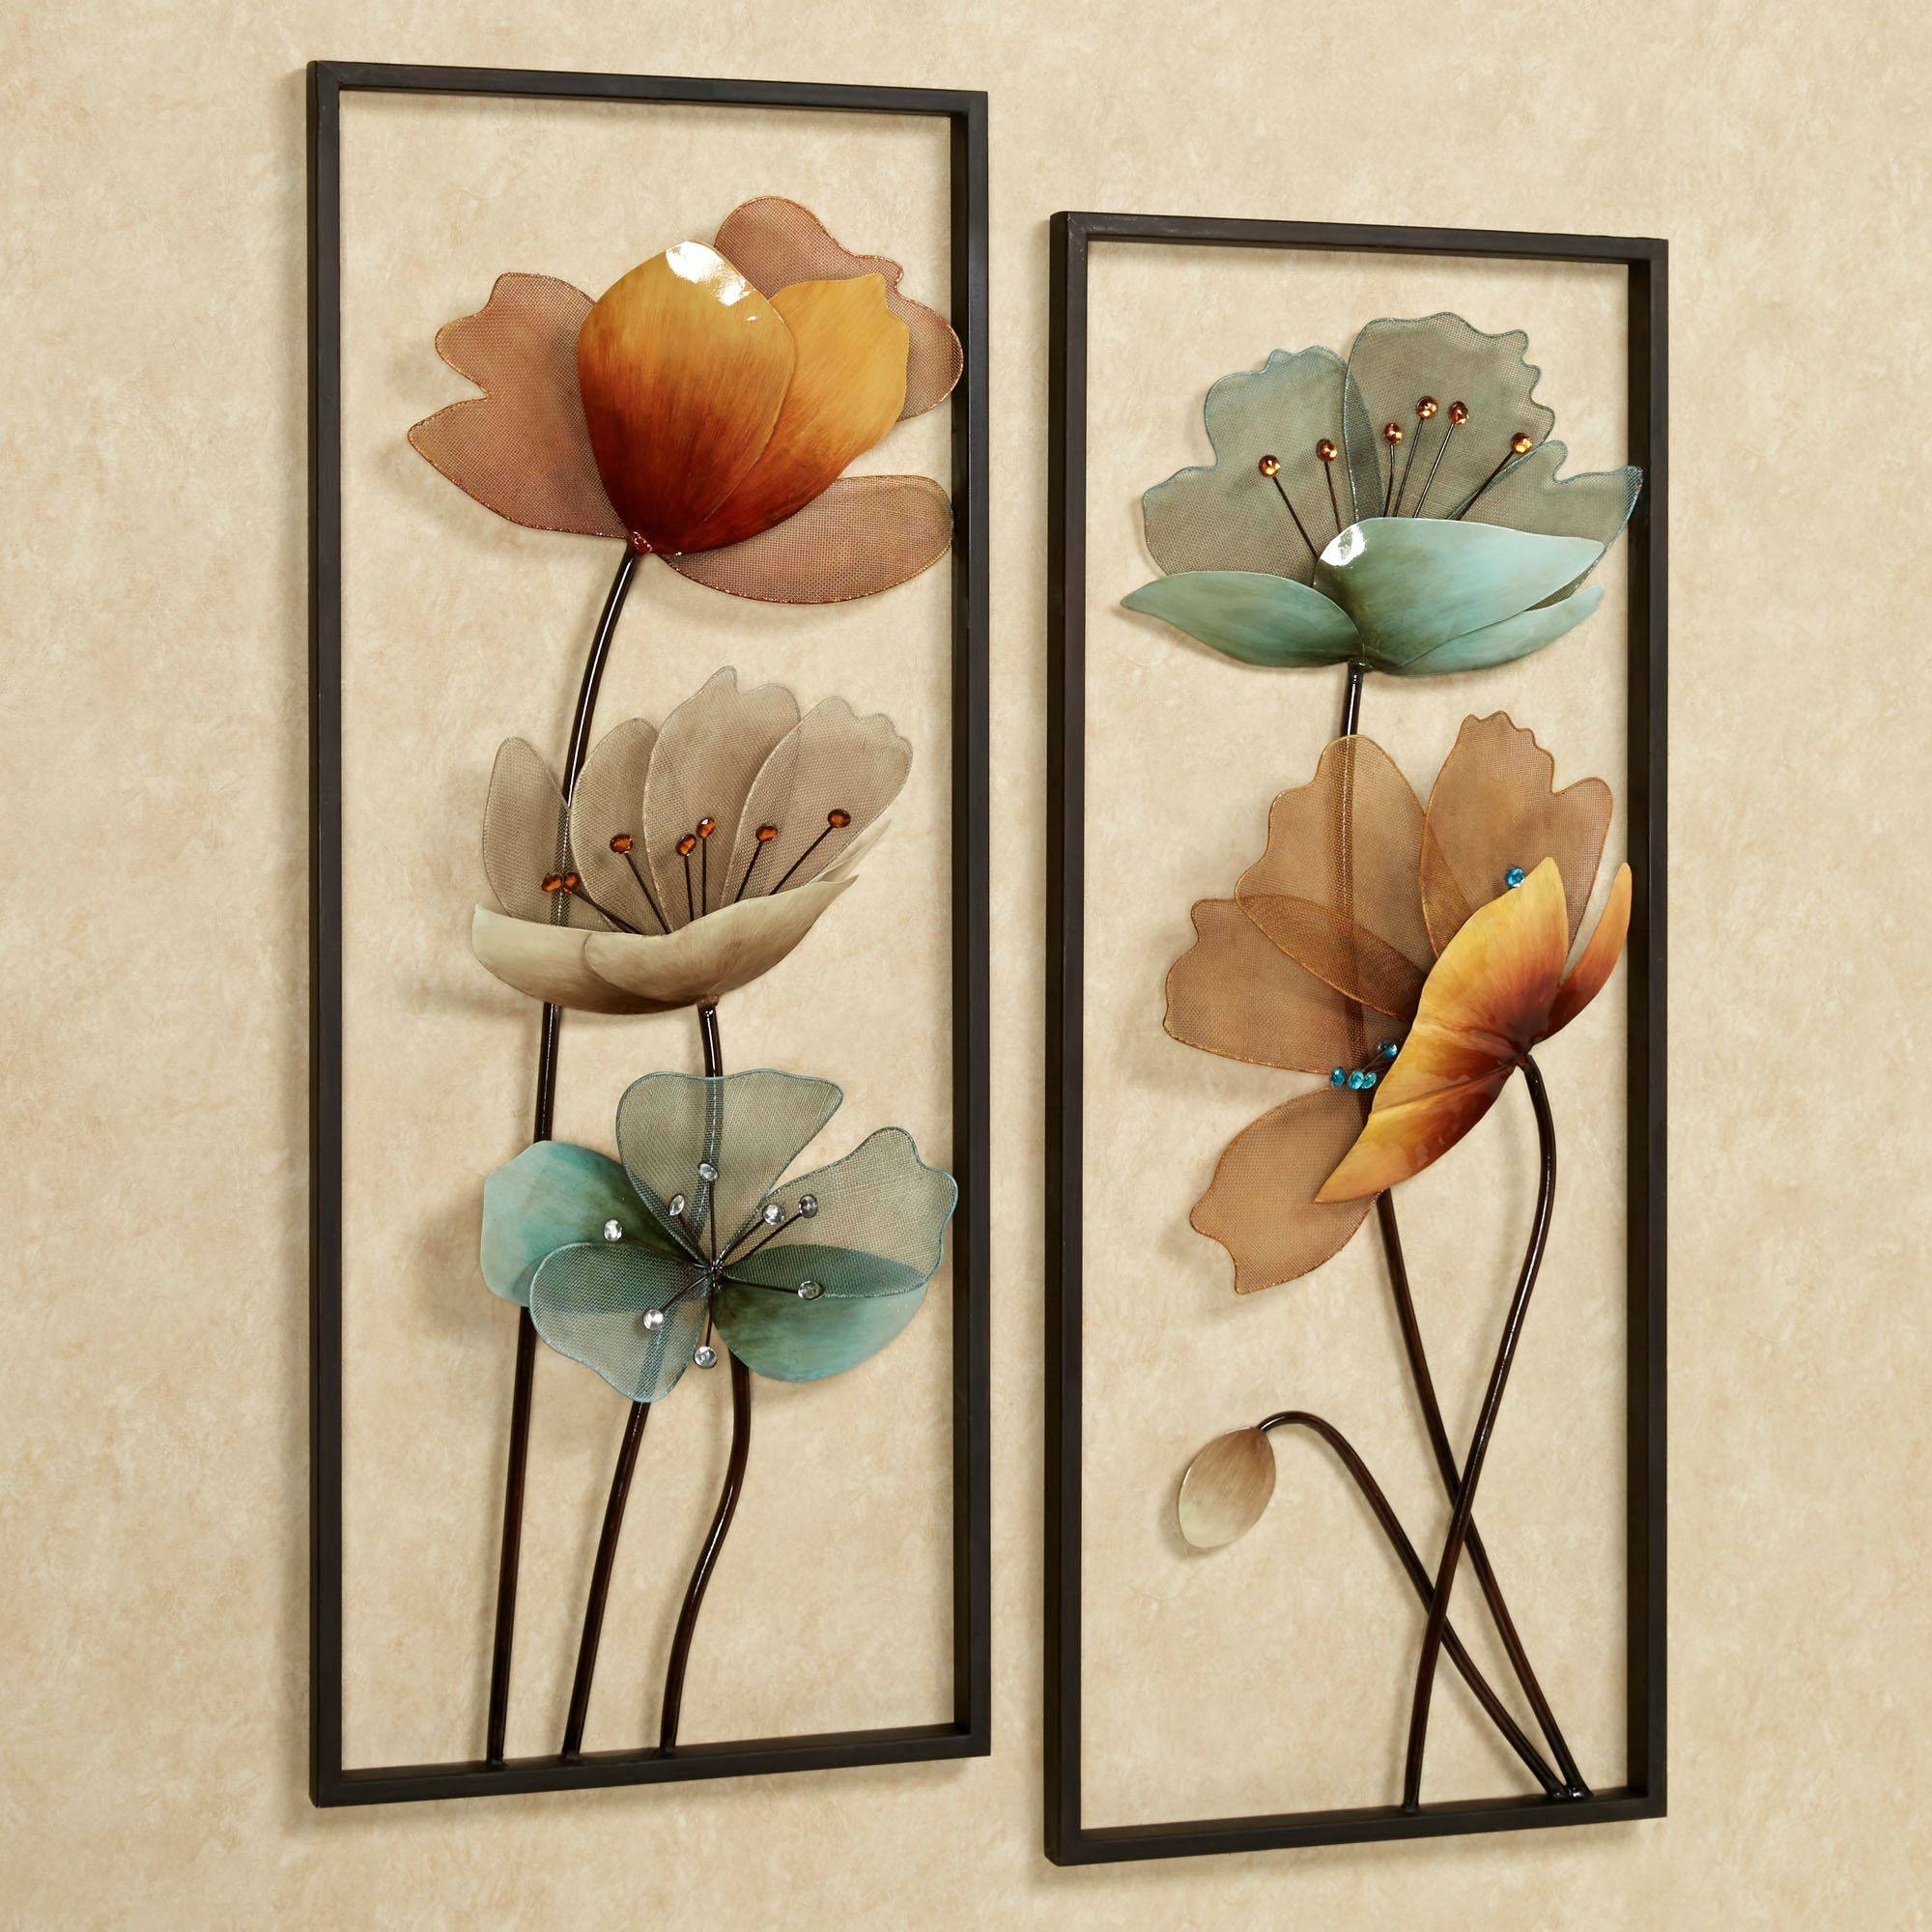 Flower Wall Art | Touch Of Class With Regard To Current Contemporary Metal Wall Art Flowers (Gallery 7 of 20)